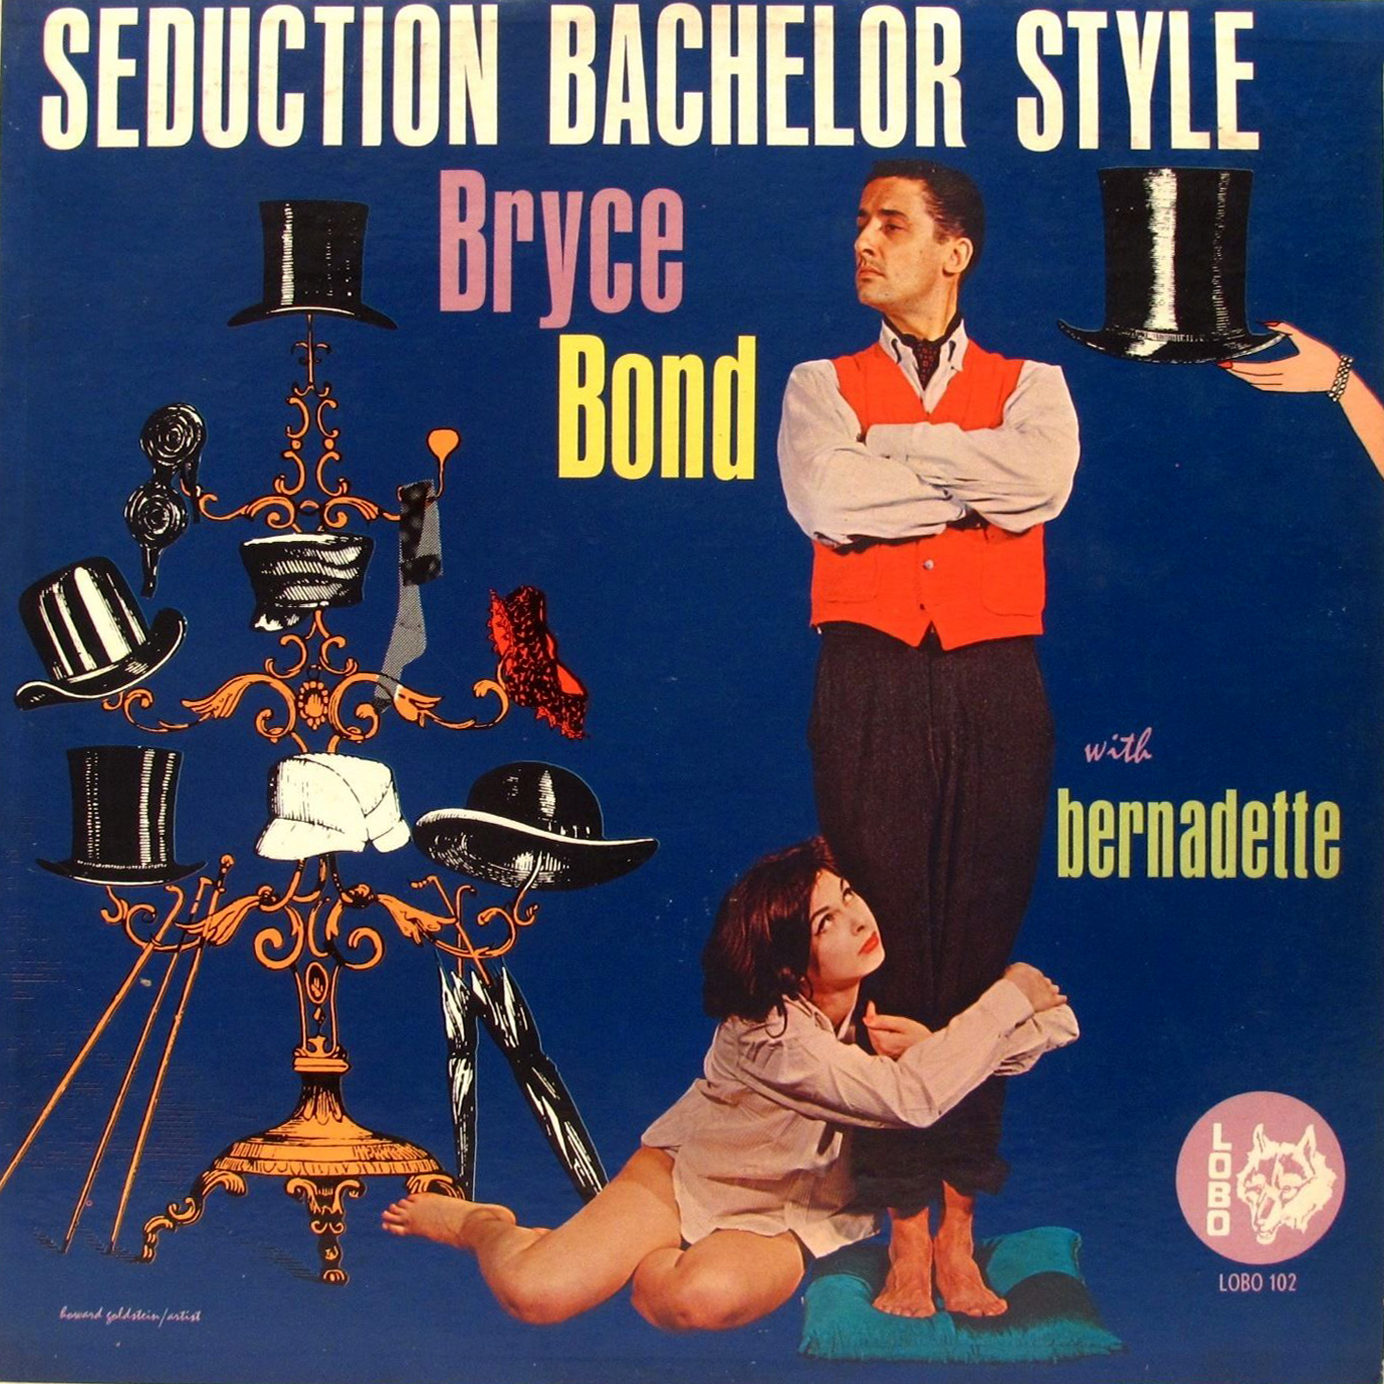 seduction bachelor style